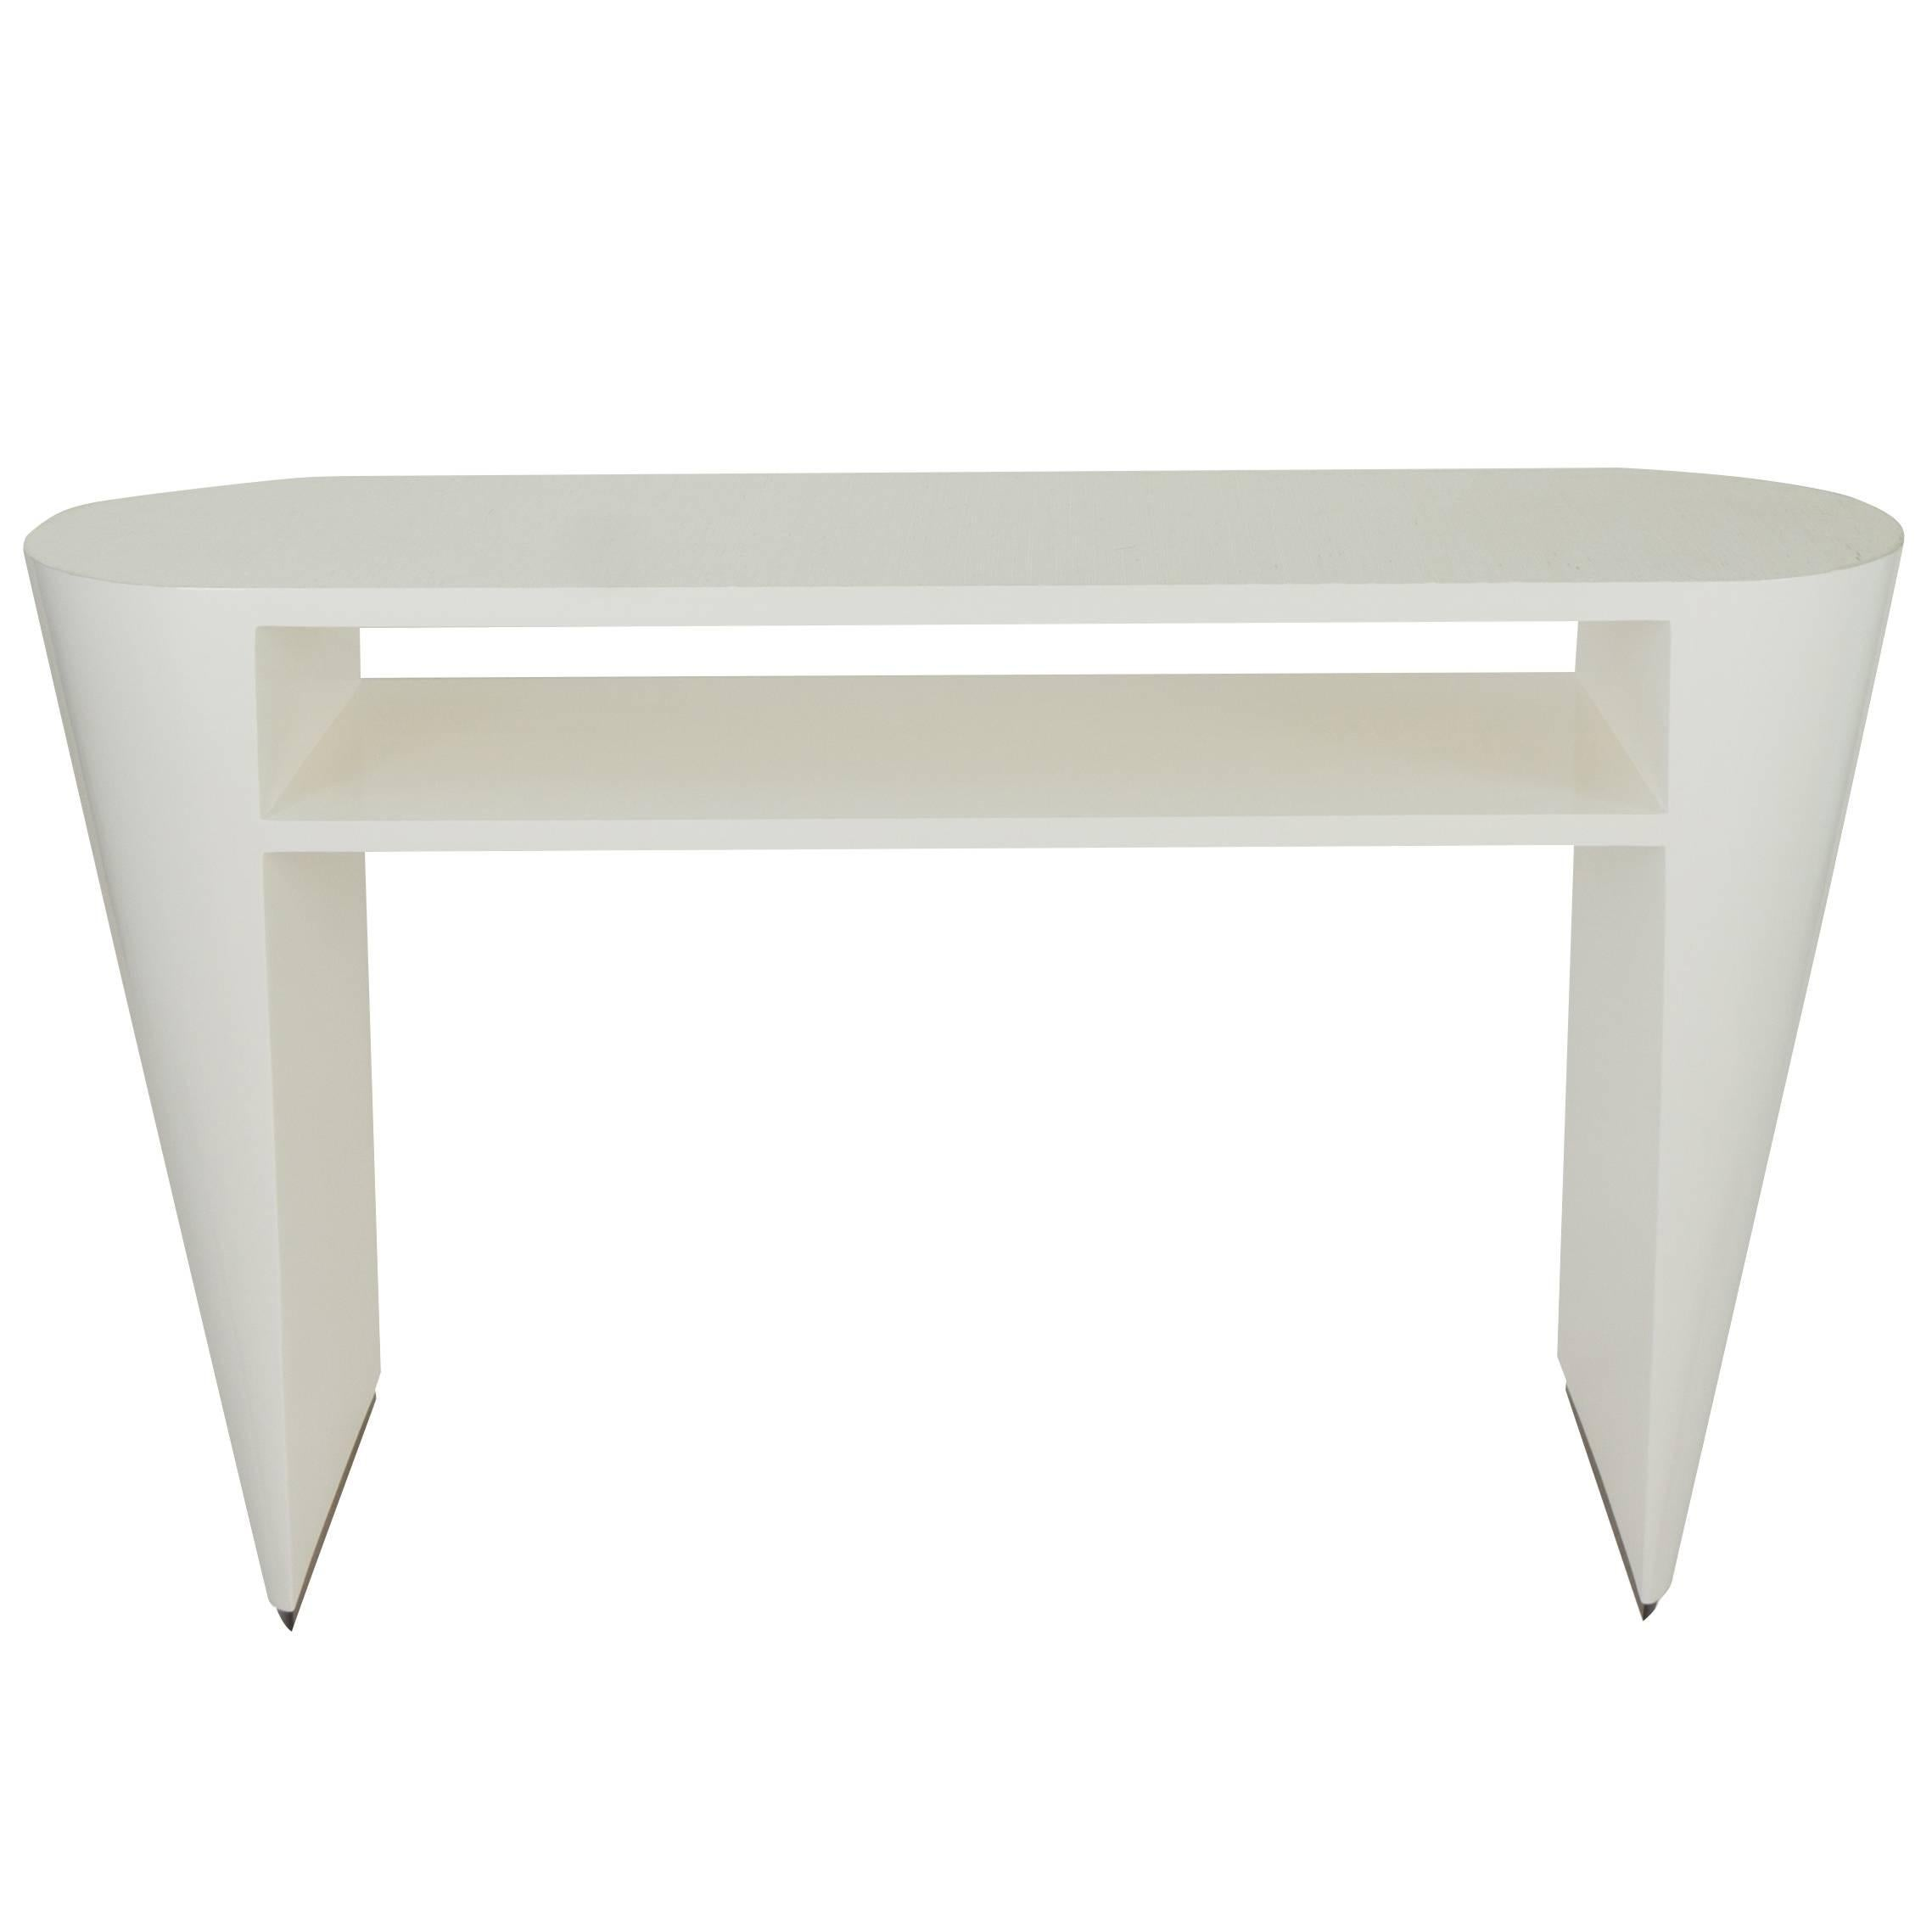 Art Deco White Lacquered Console Table With Grasscloth Top